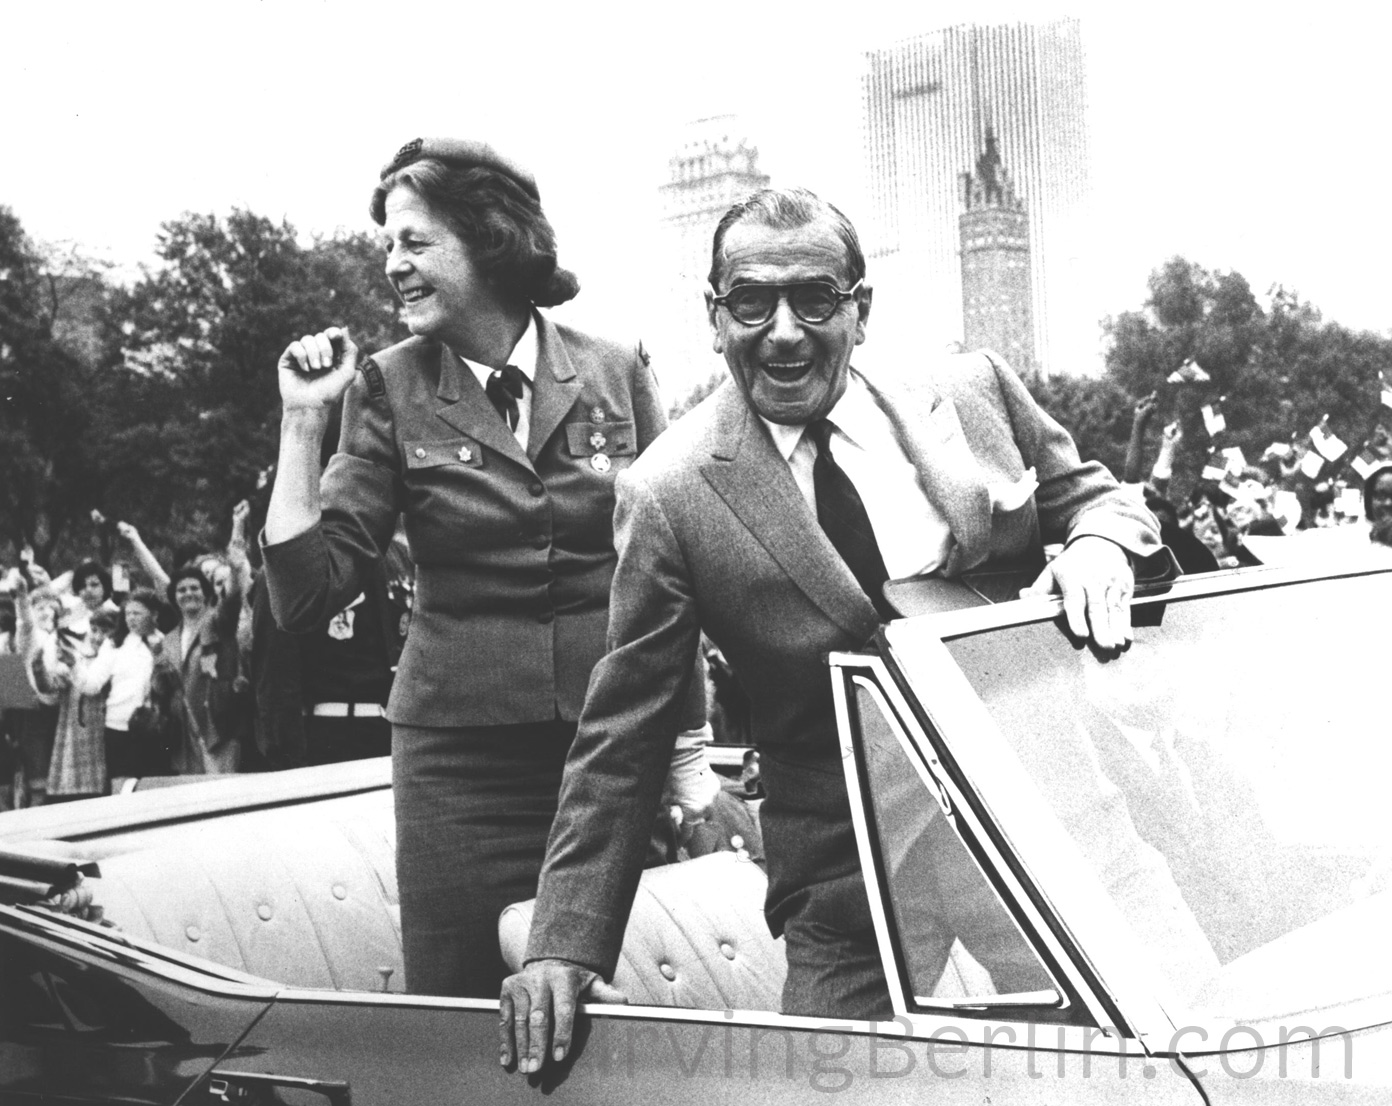 Irving and Ellin Berlin at a Boy Scout's Parade